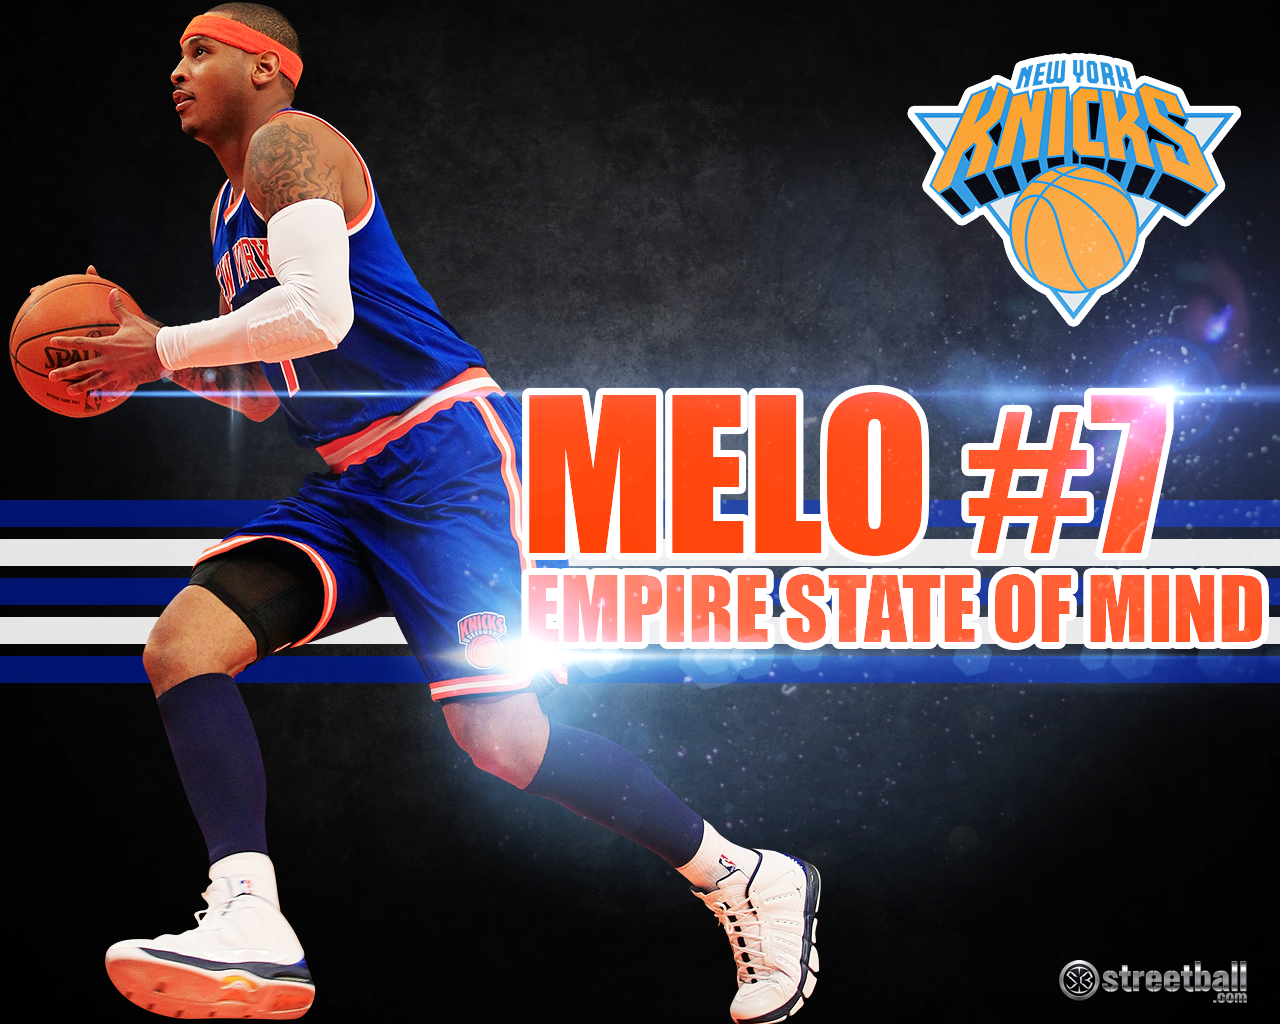 Knicks wallpaper melo new knicks wallpapers things to wear knicks wallpaper melo new knicks wallpapers voltagebd Image collections